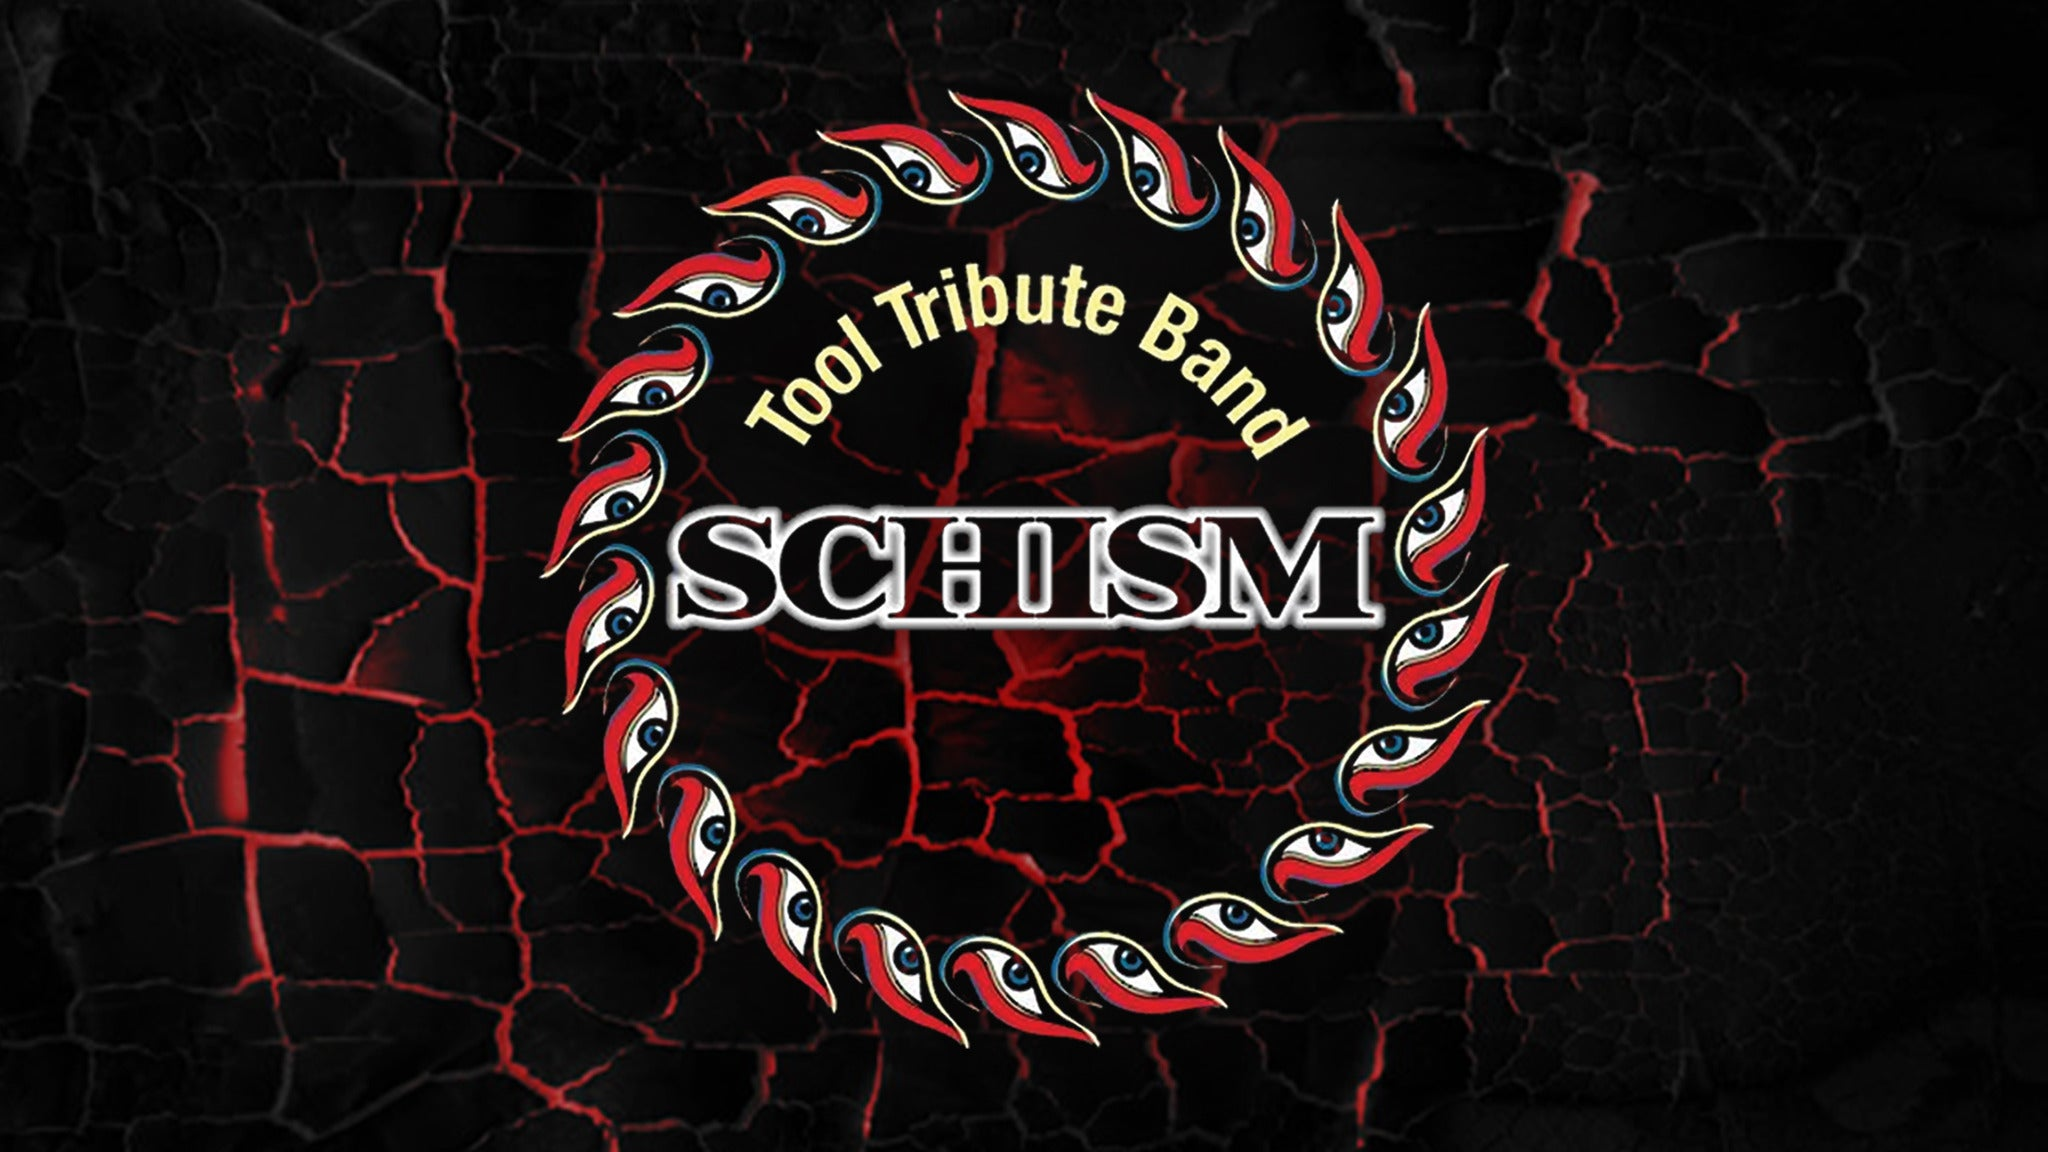 Schism (A Tribute To Tool), Facelift (A Tribute to Alice In Chains), Grunge Type Thing, Lana Blac, Illusions of Grandeur